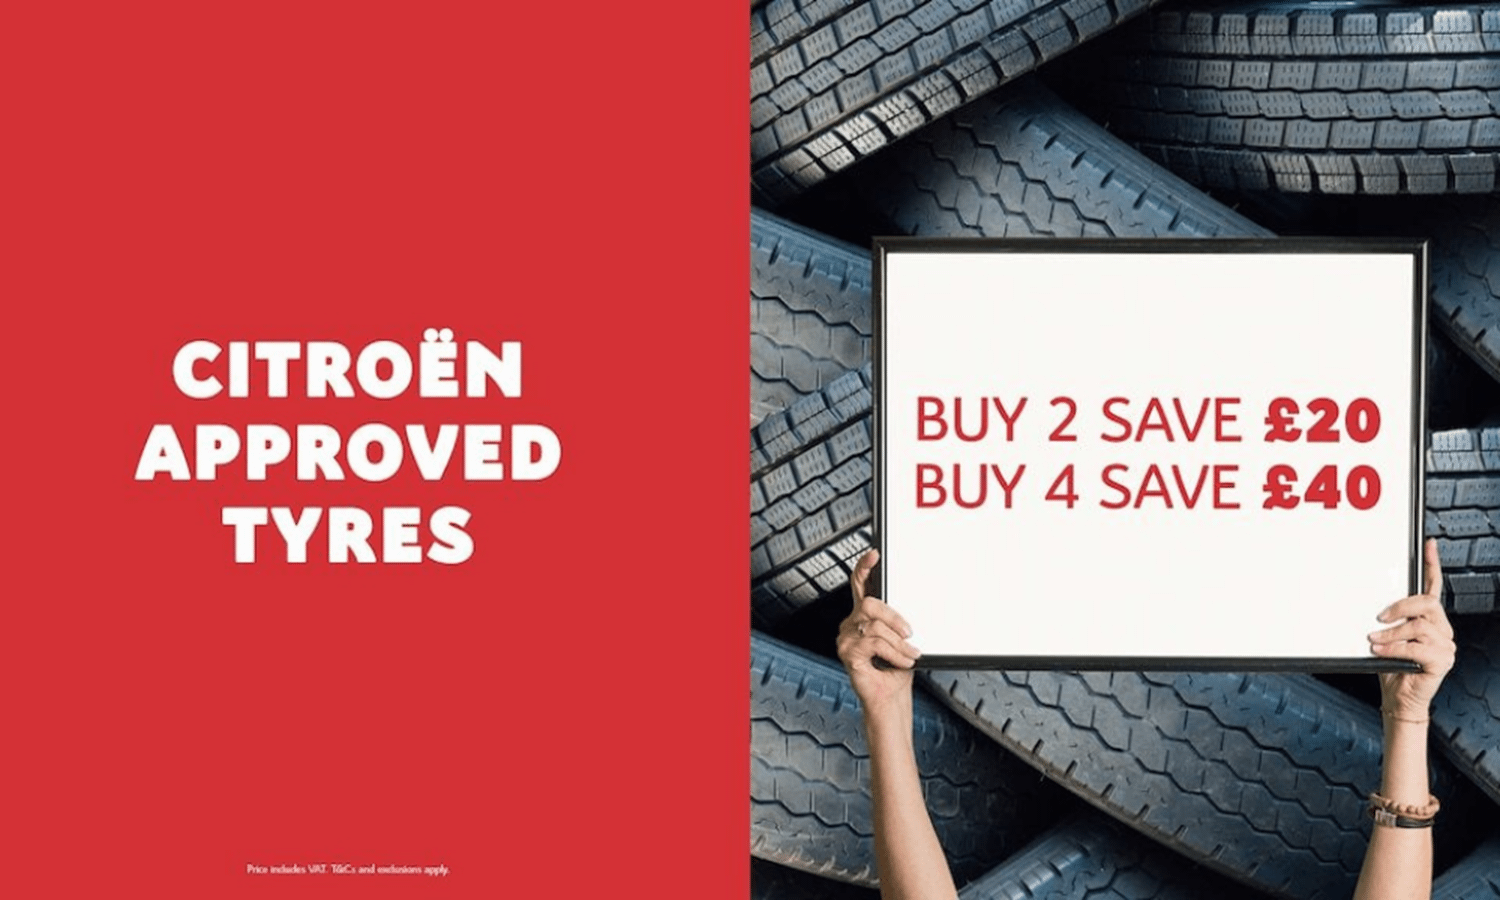 Citroen Approved Tyres Offer